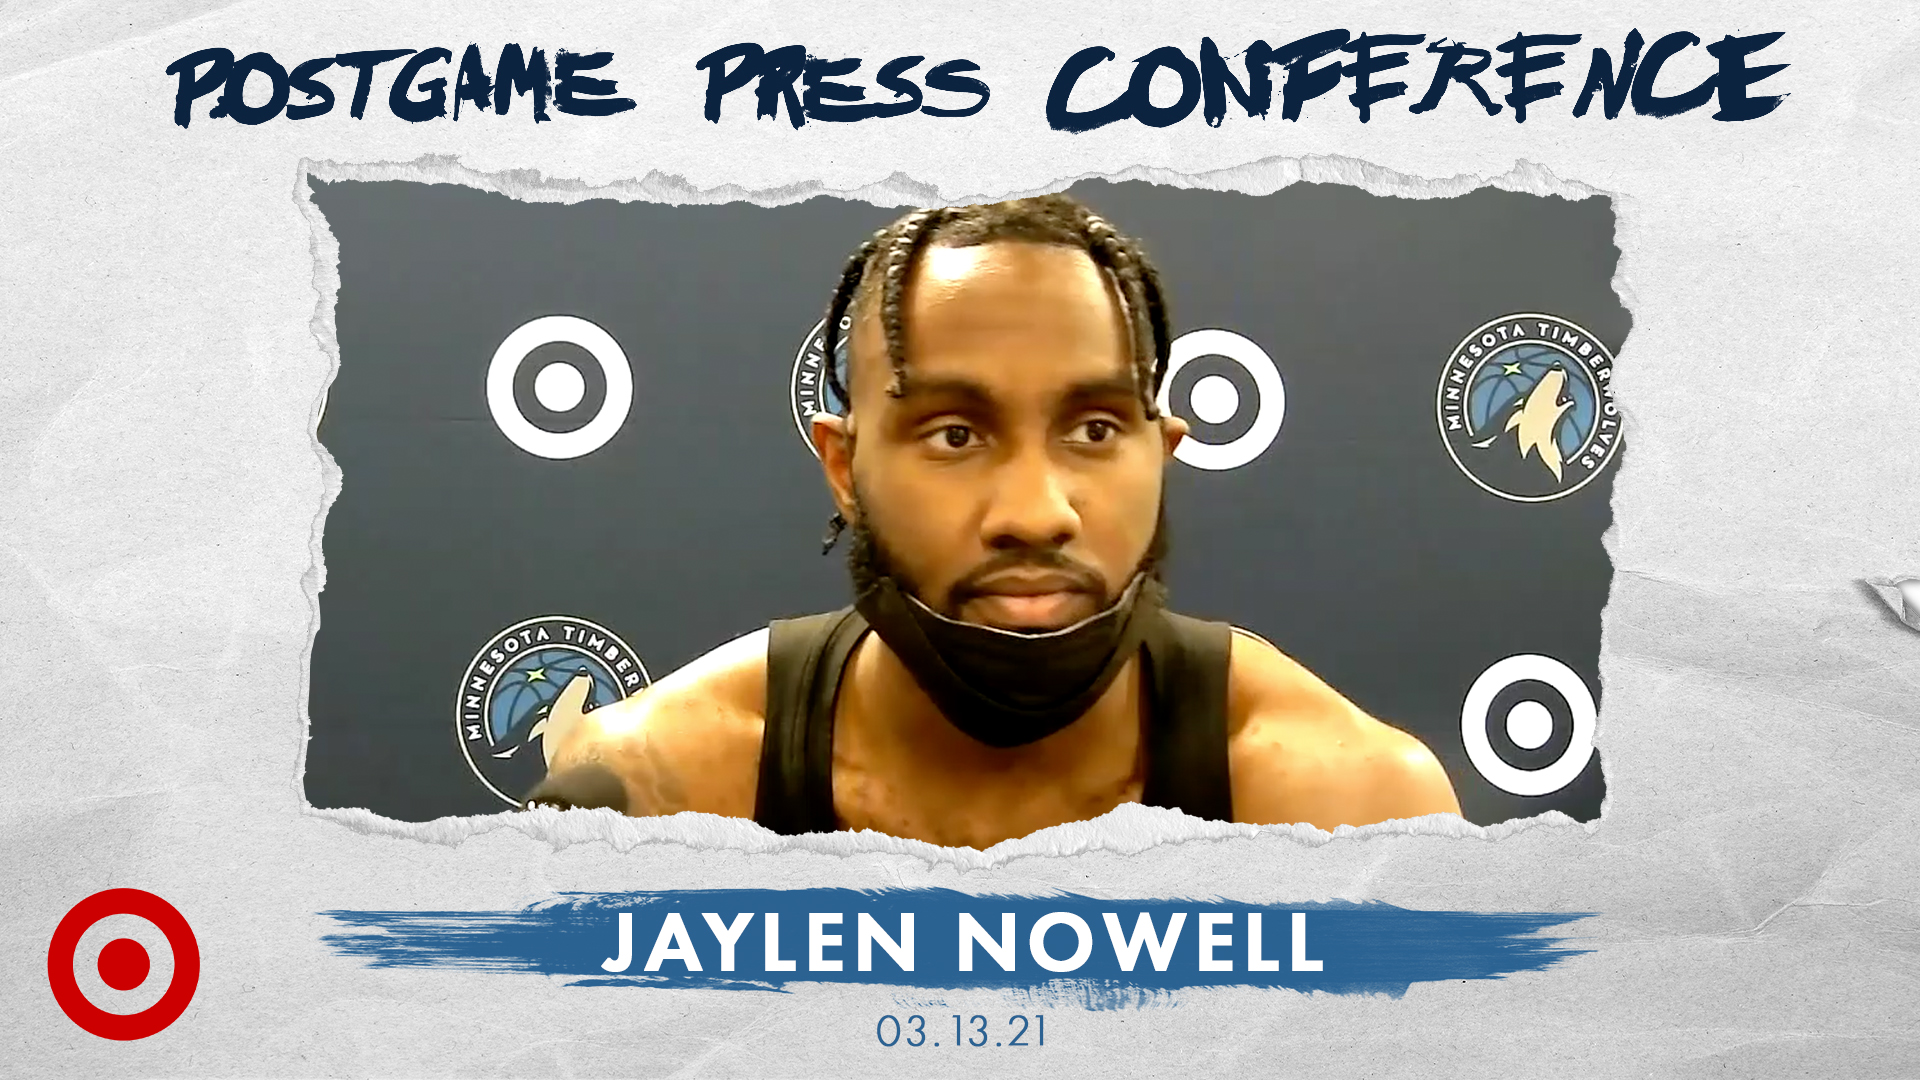 Jaylen Nowell Postgame Press Conference - March 13, 2021